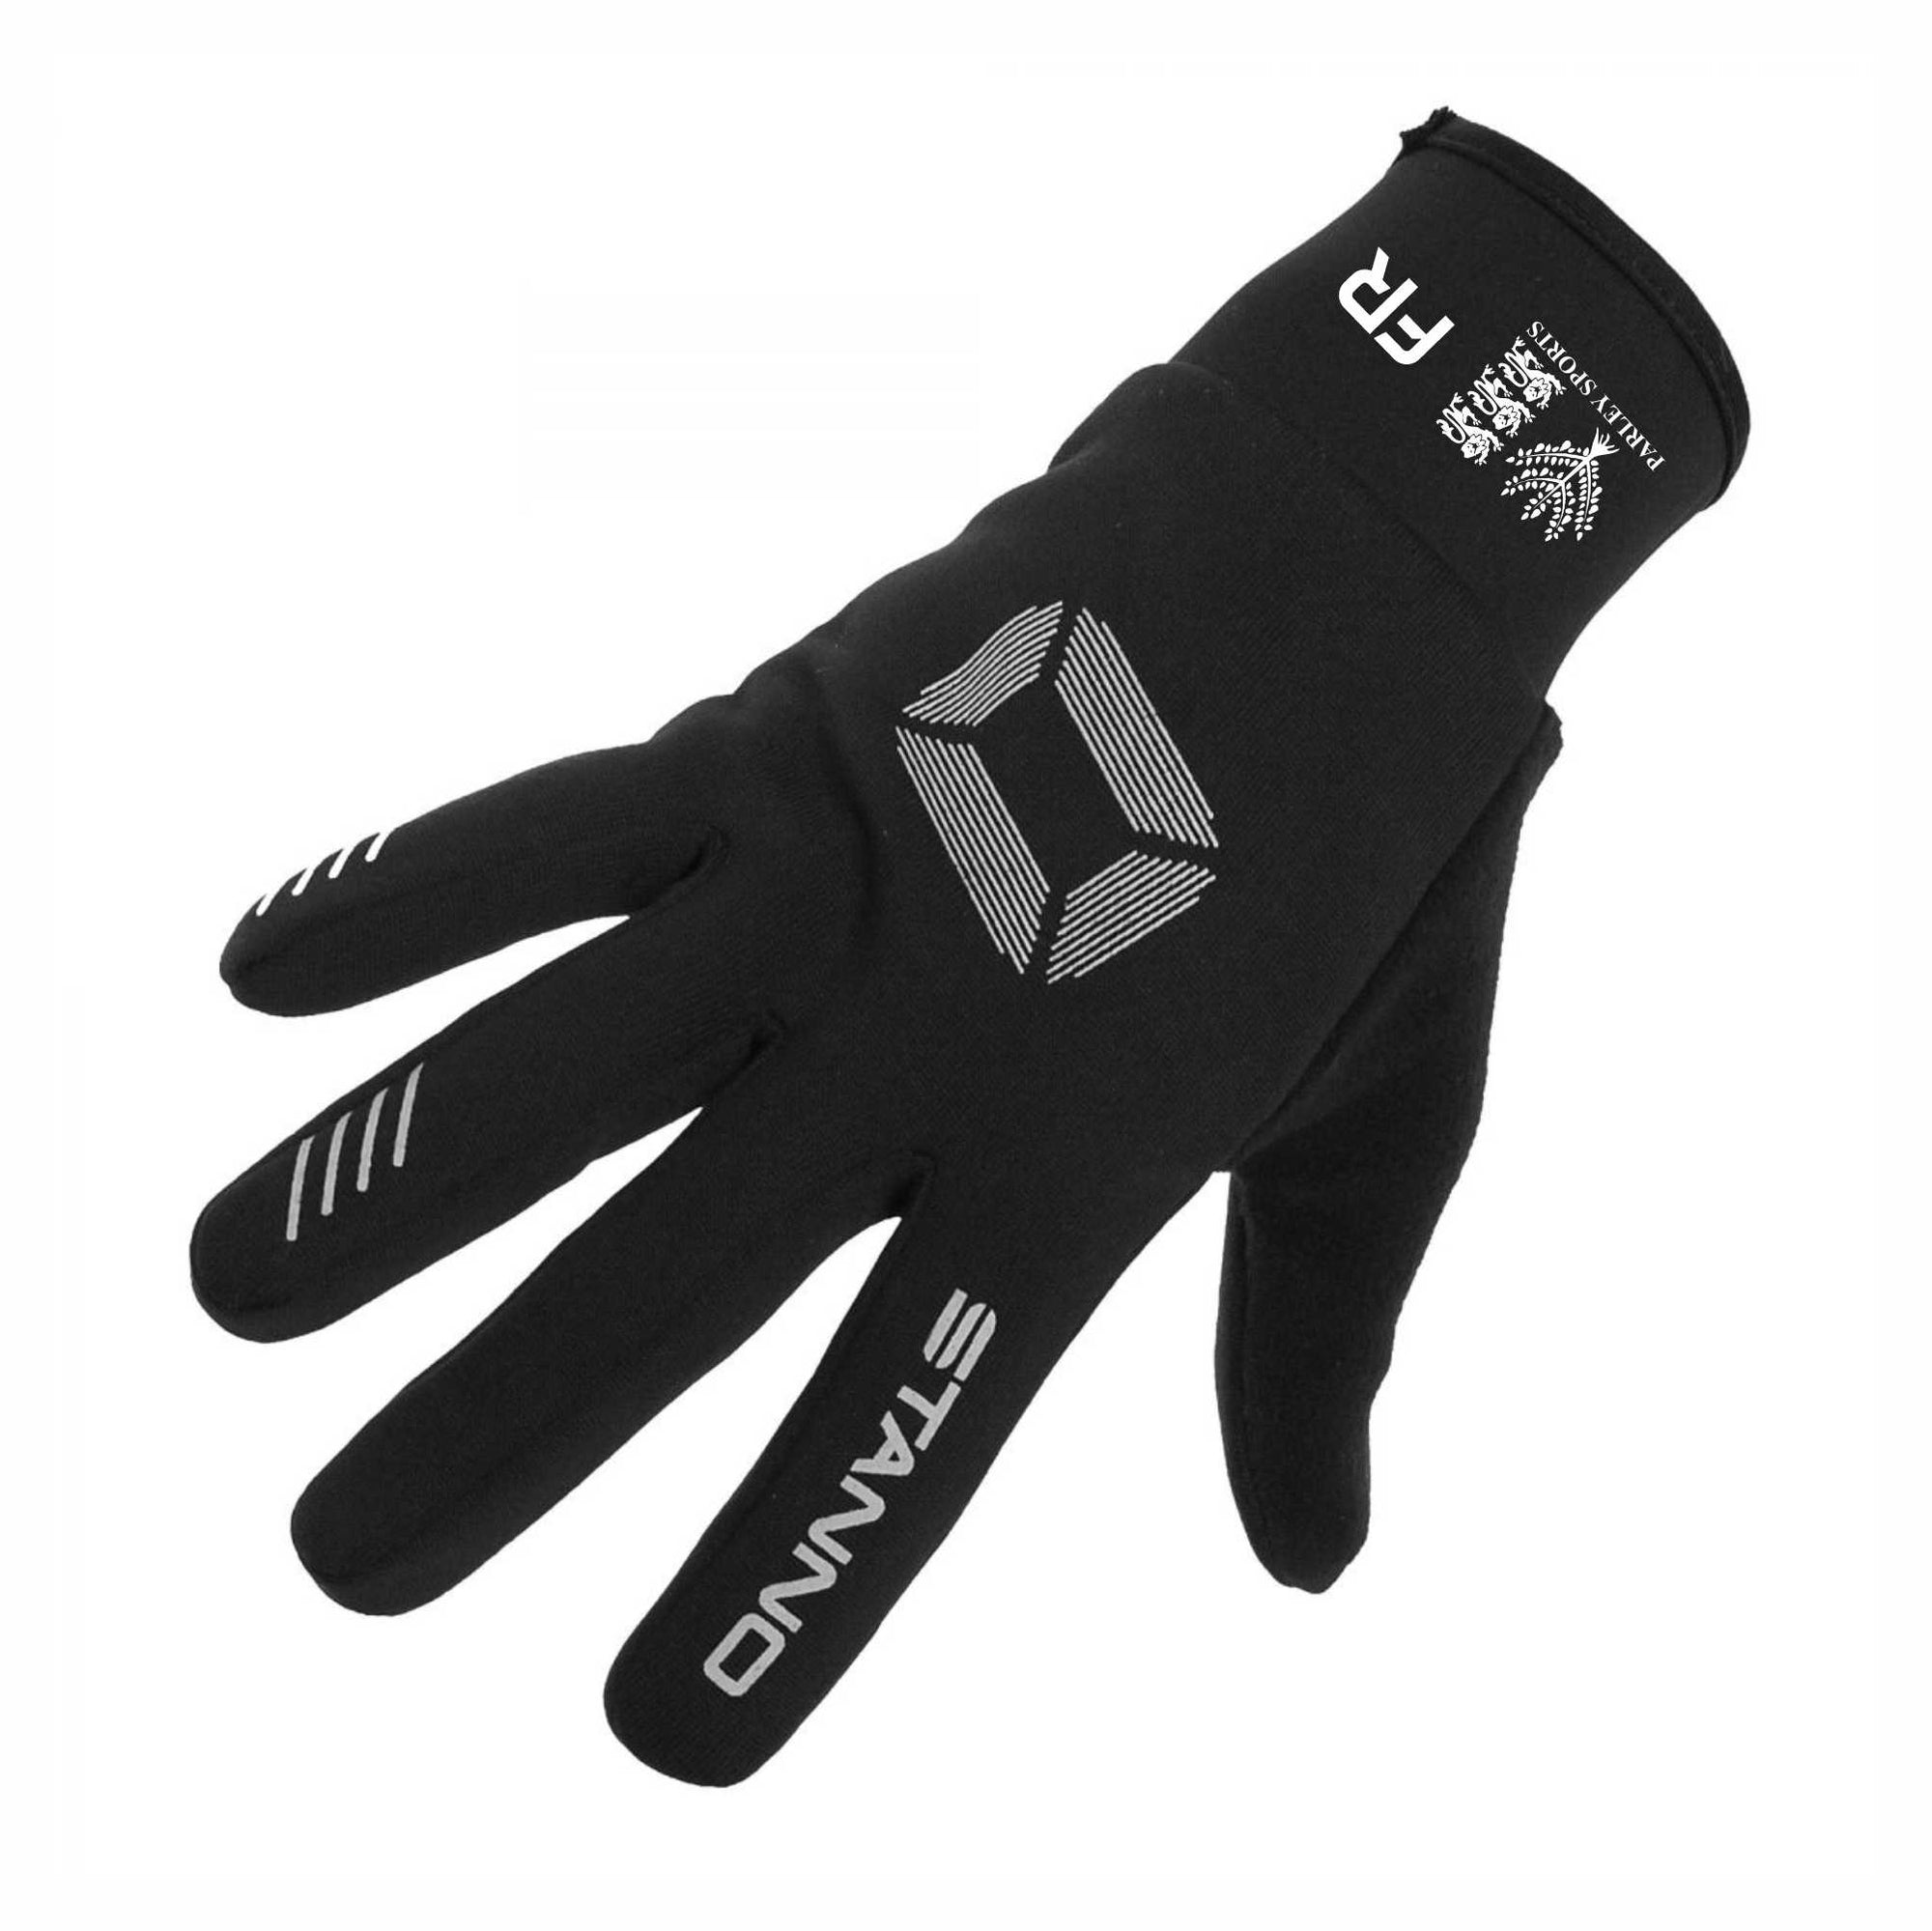 Parley Sports YFC - Stanno Player Glove